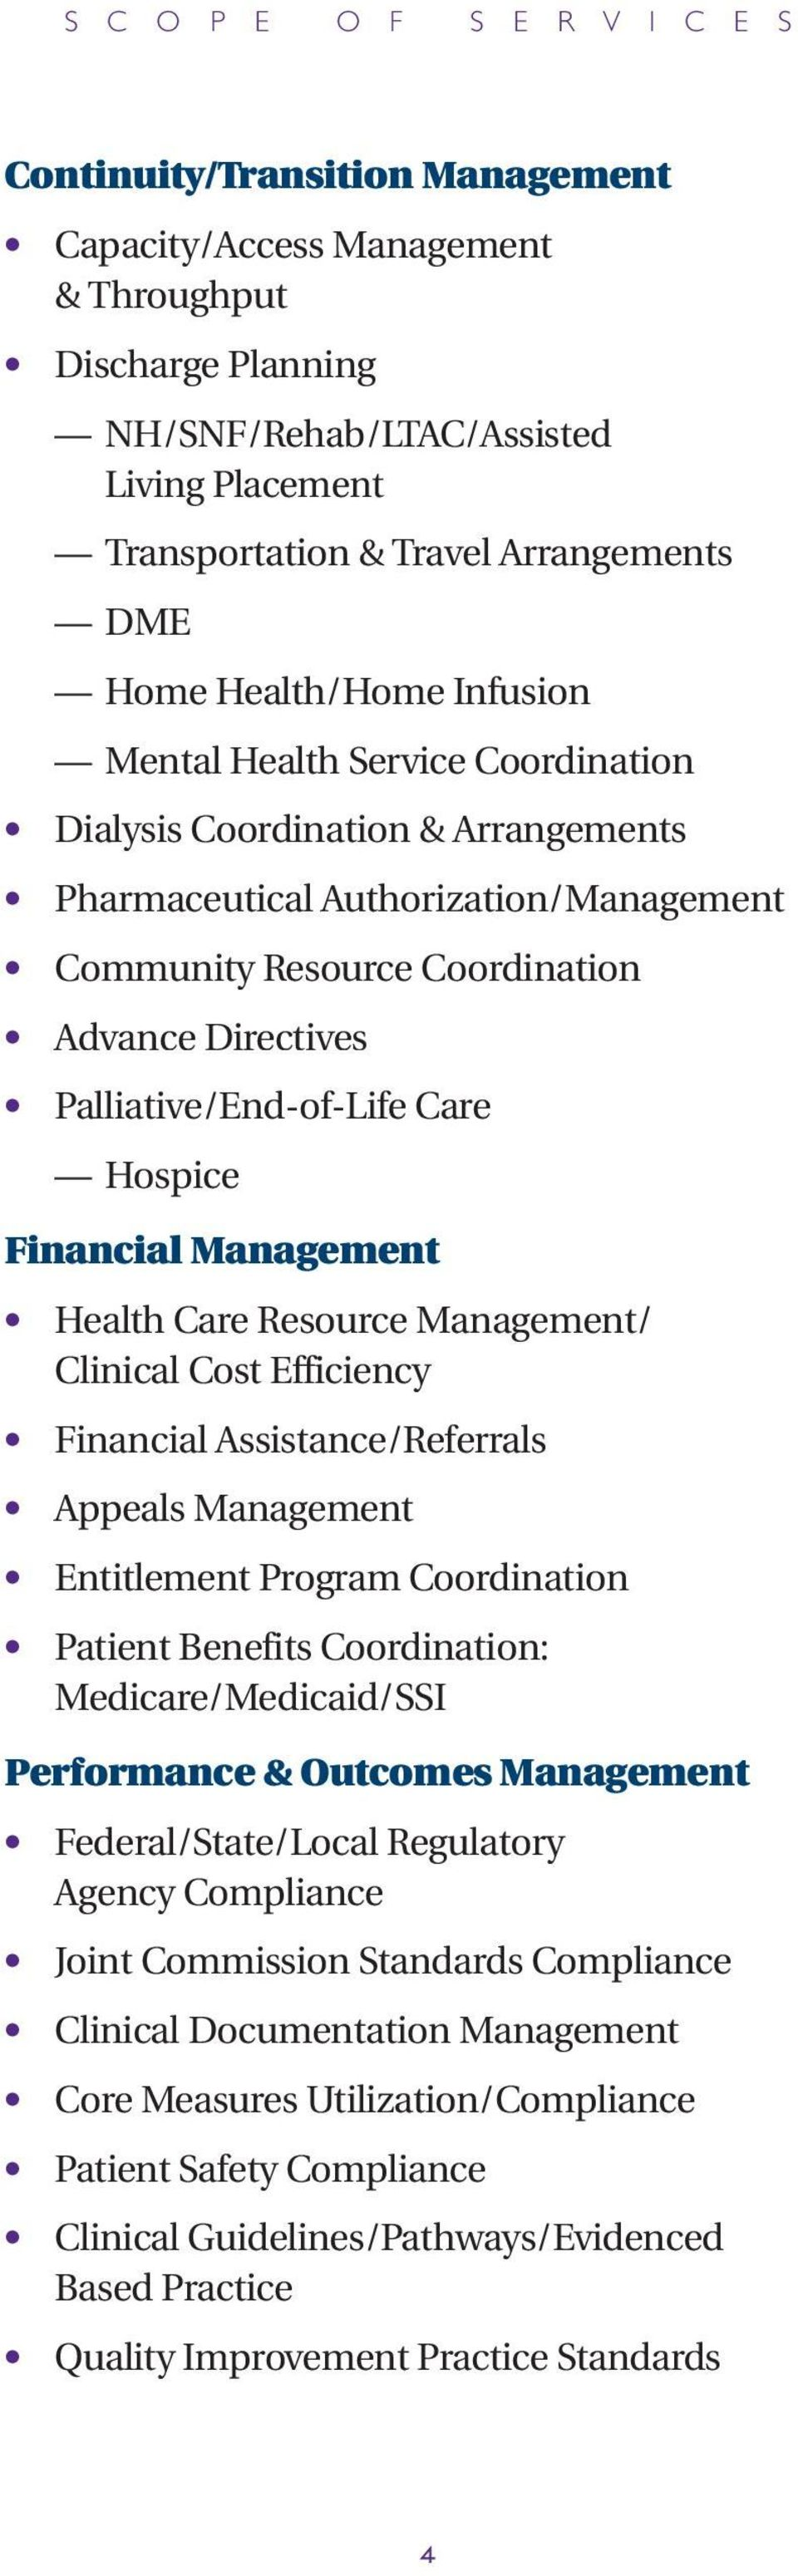 Directives Palliative/End-of-Life Care Hospice Financial Management Health Care Resource Management/ Clinical Cost Efficiency Financial Assistance/Referrals Appeals Management Entitlement Program